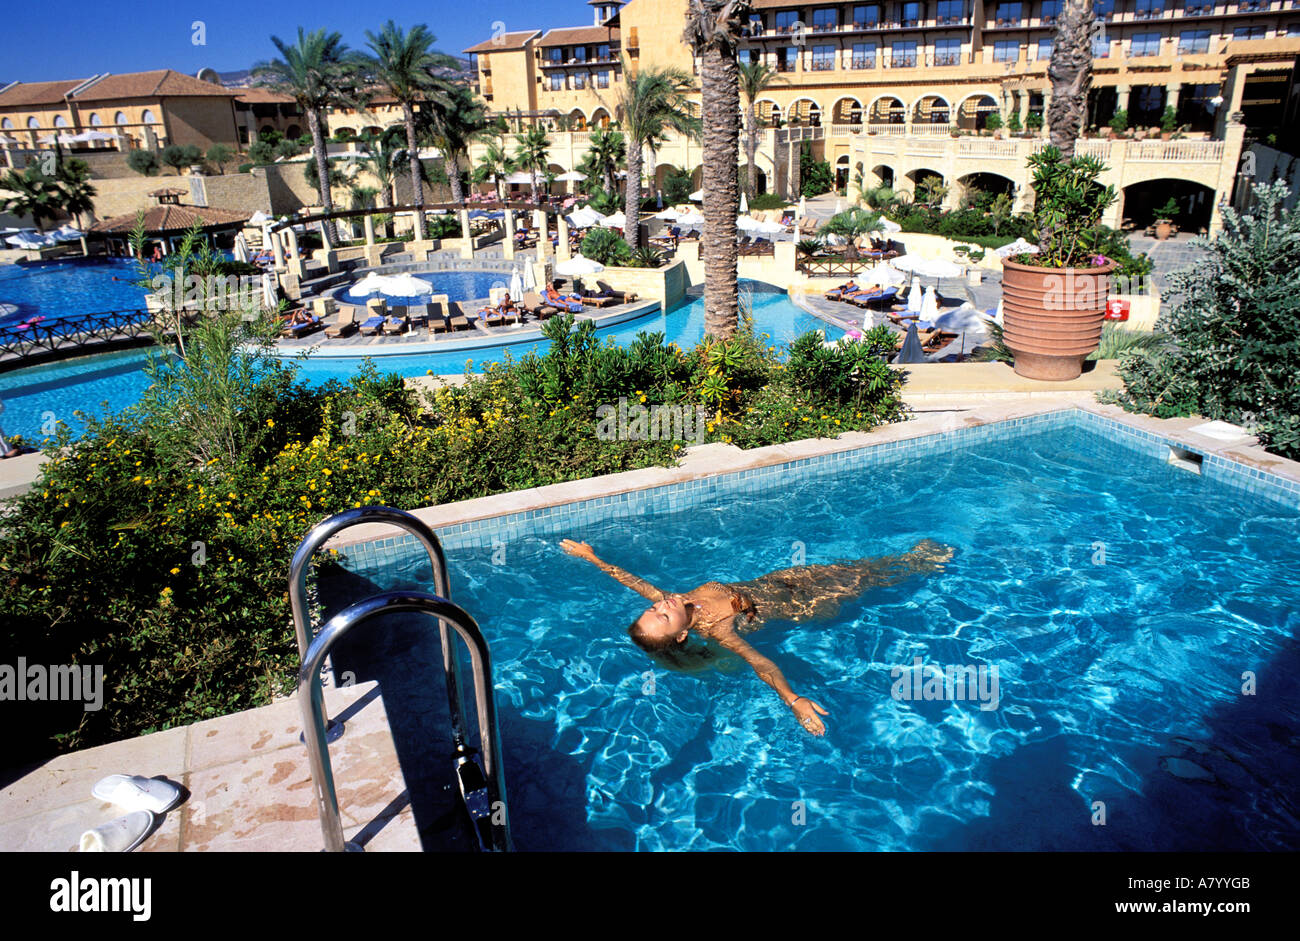 Cyprus Pafos District Pafos City Elysium Hotel Private Pool In